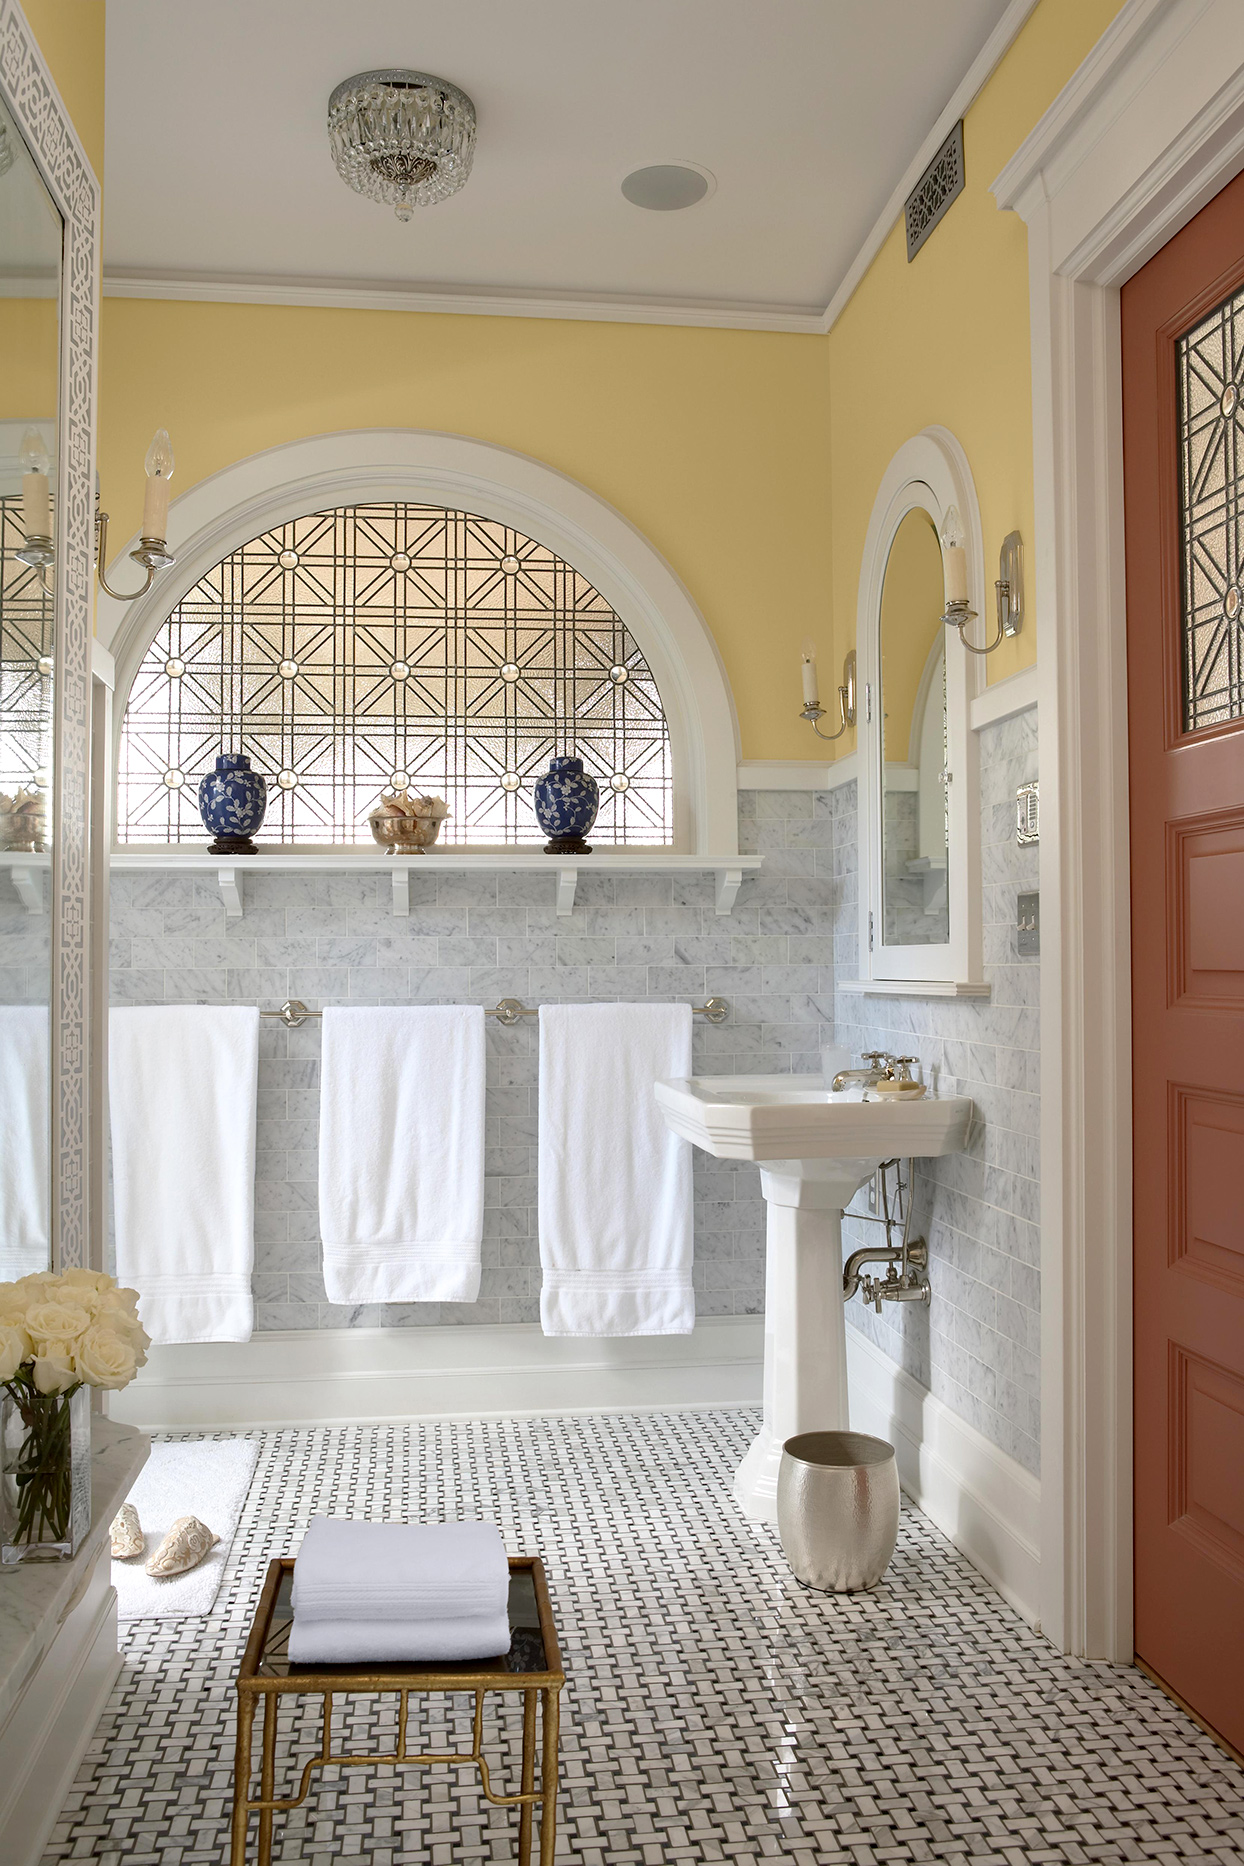 Bathroom with marble and yellow walls